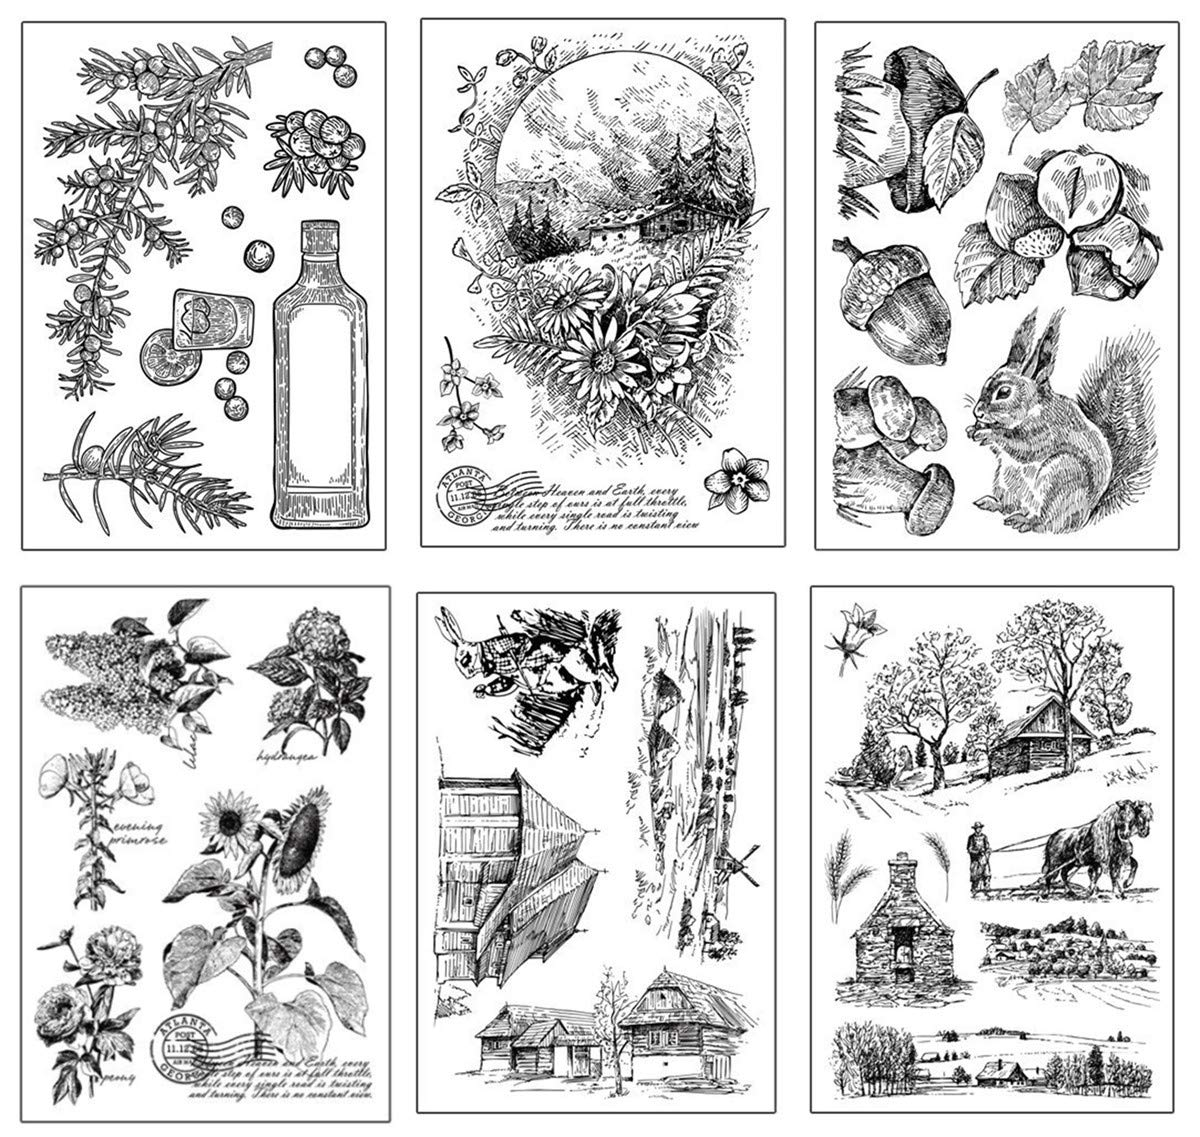 Layhome Vintage Clear Stamp Stamping Scrapbooking Notebook Album Cards Decor (Character Scrapbooking) by Layhome (Image #5)